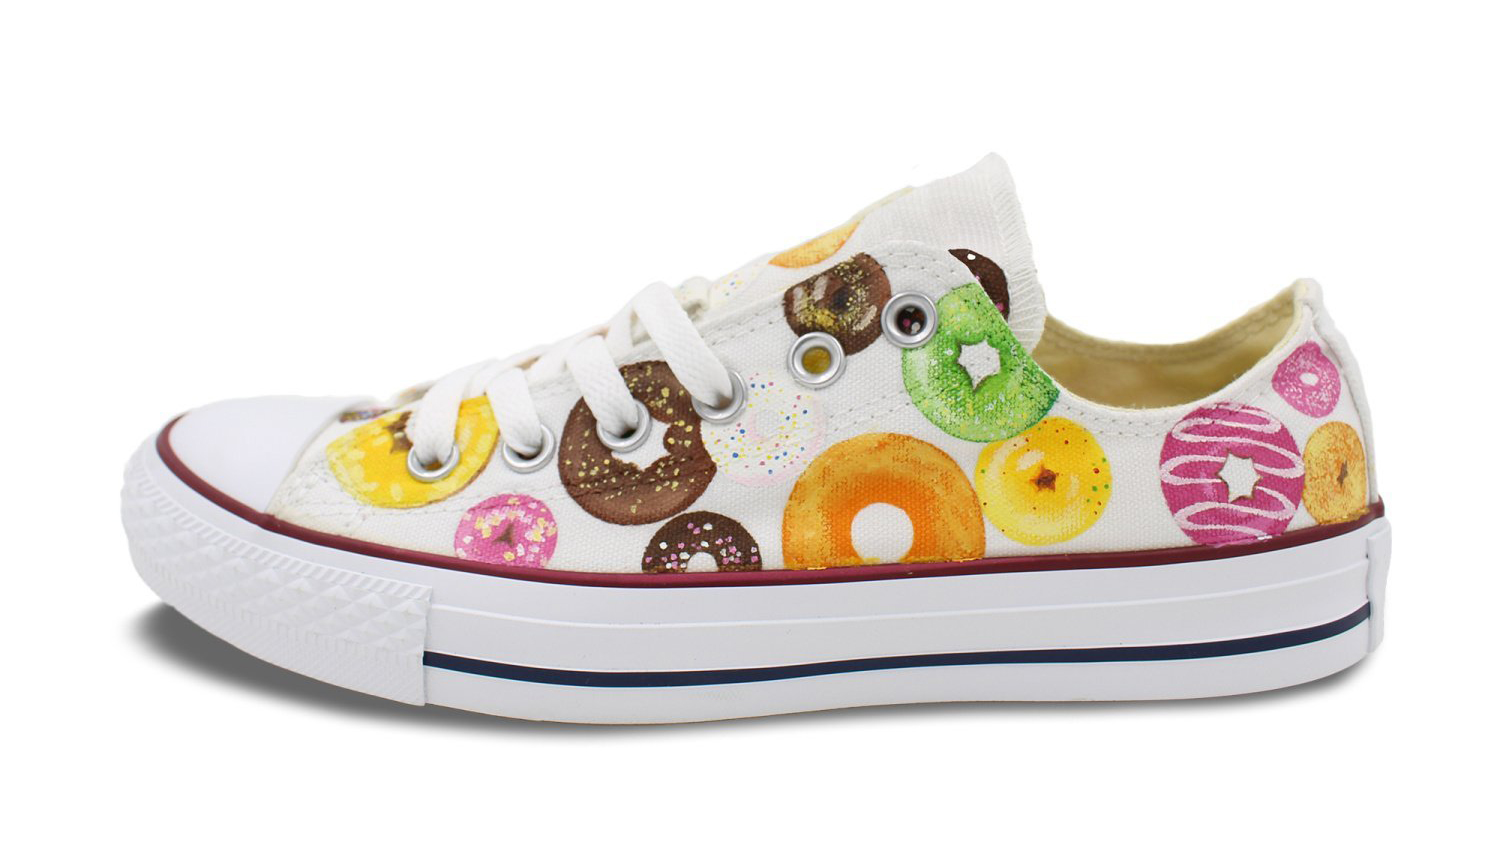 sneakers from amazon with doughnuts